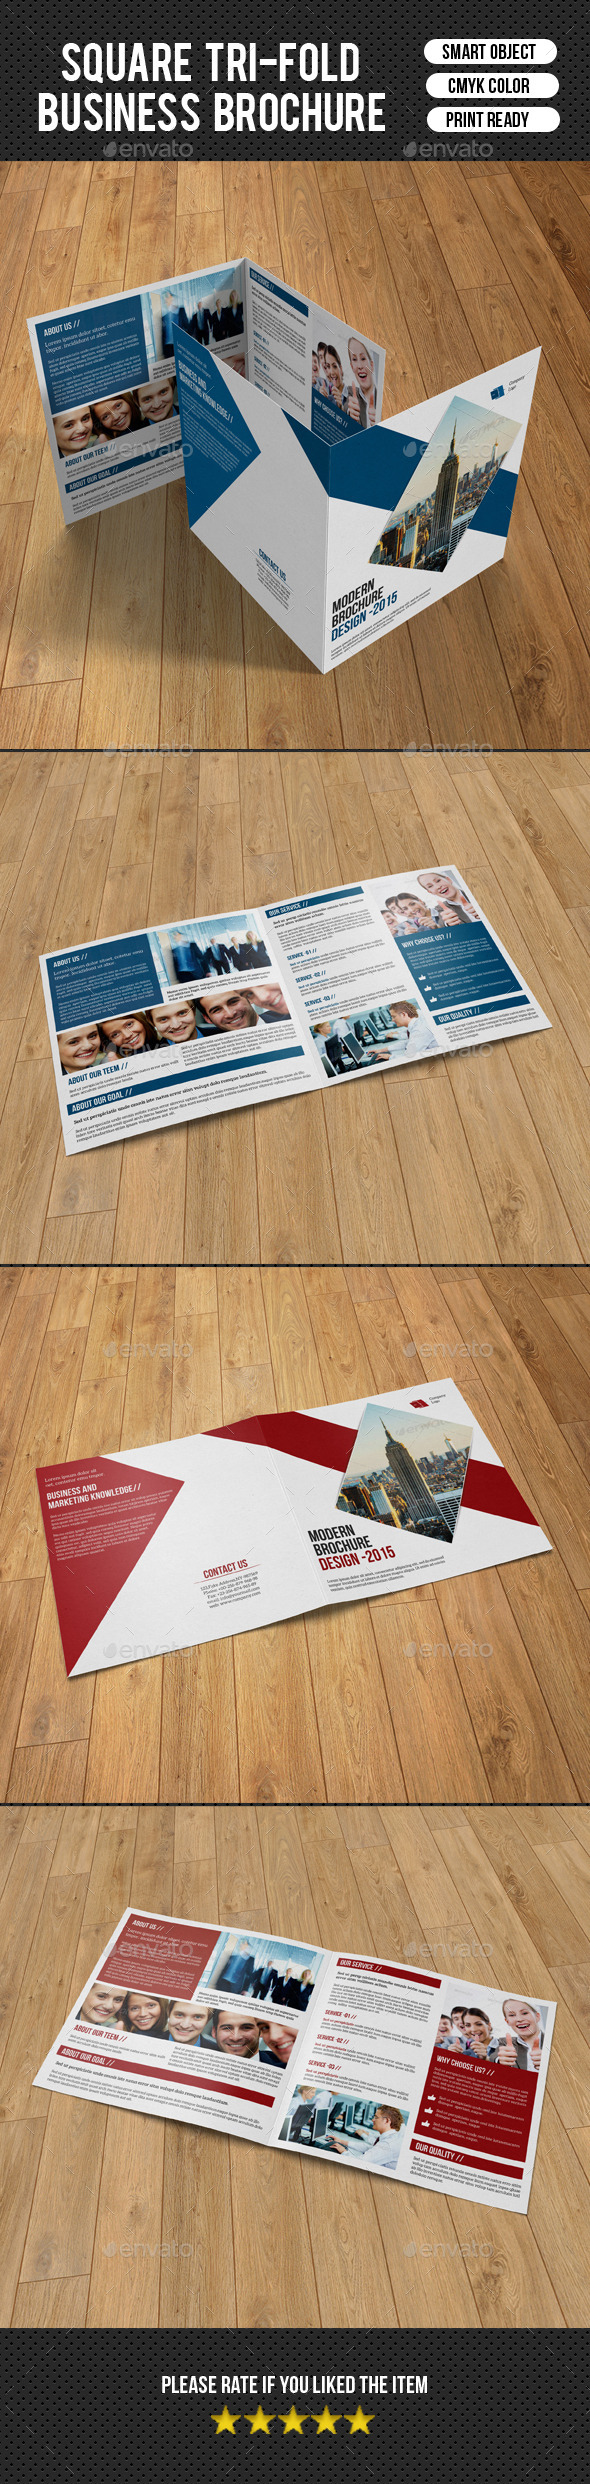 Corporate Square Bifold Brochure-V12 - Corporate Brochures